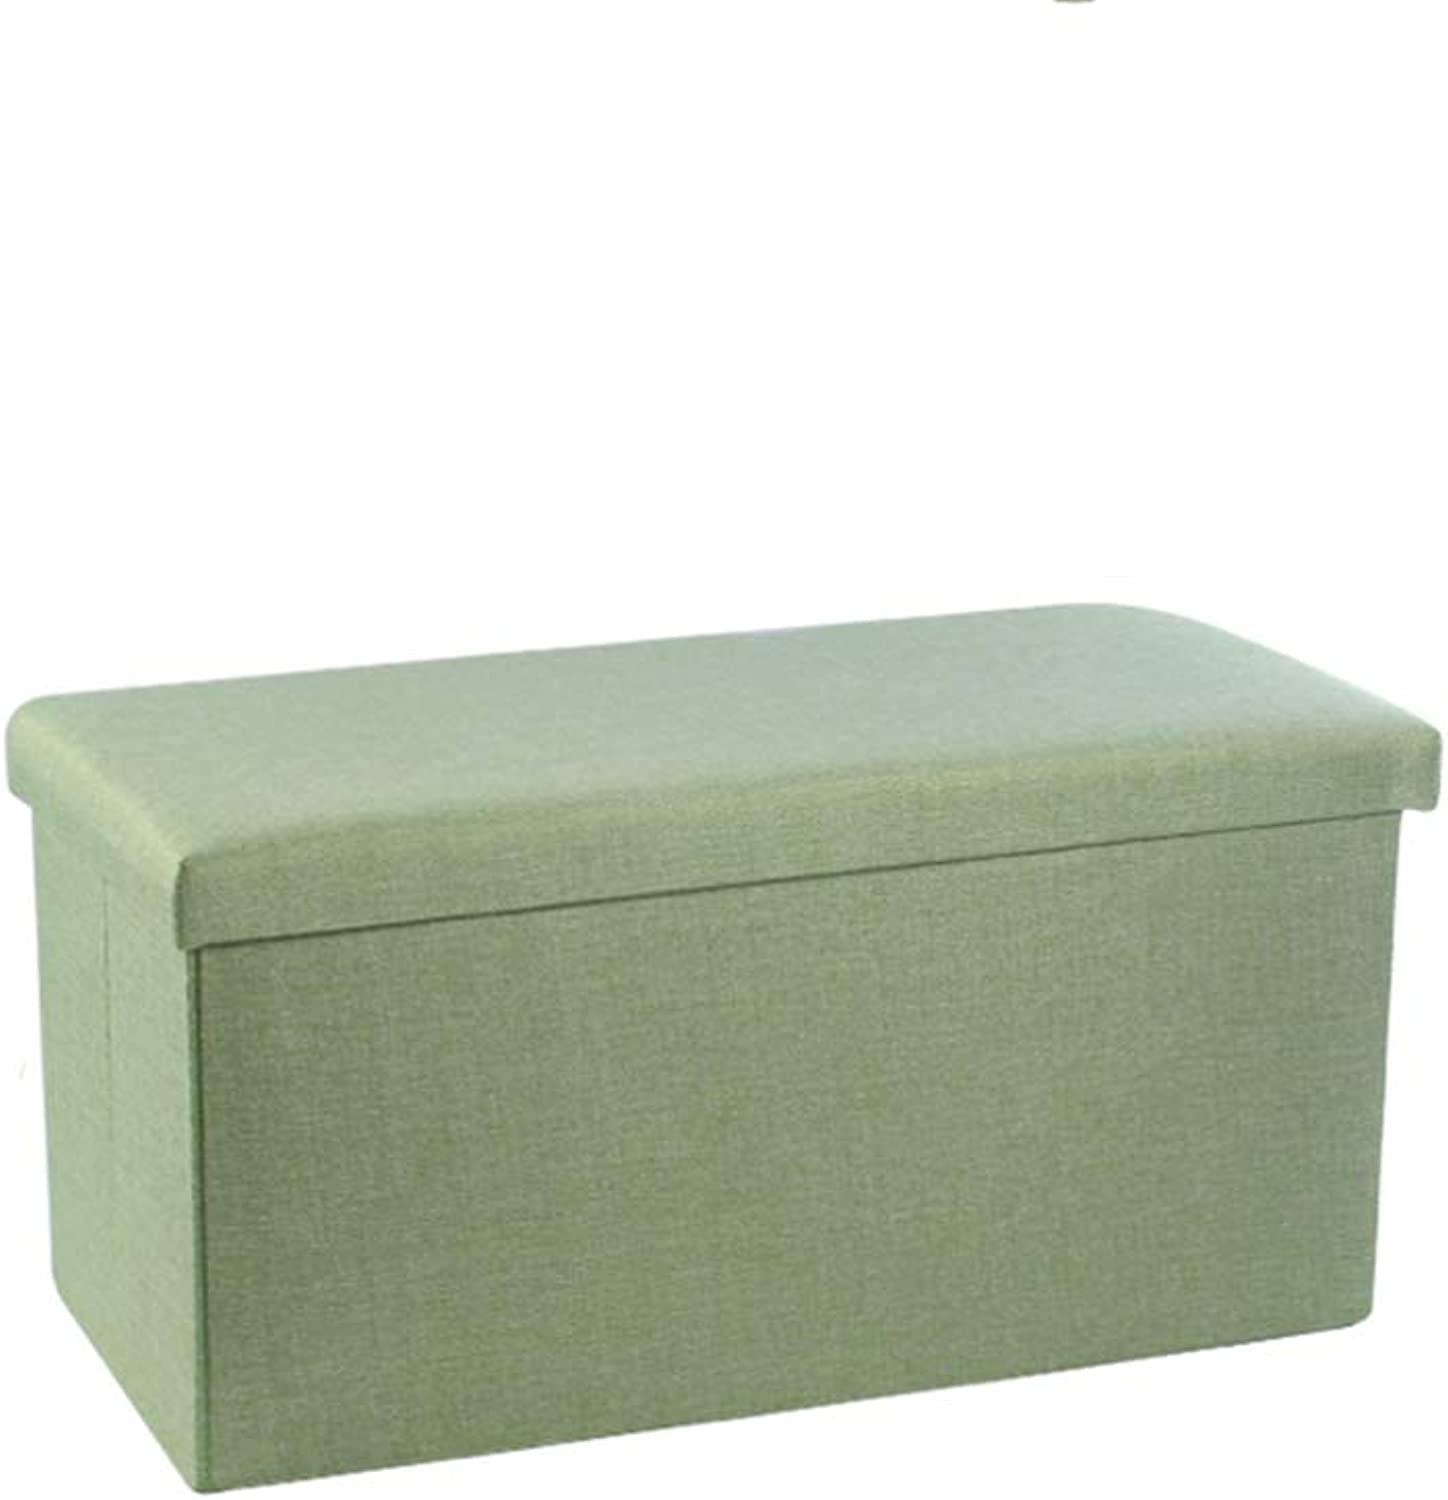 XSJJ Storage Stool, Rectangular Storage Stool can sit Adult Sofa Stool Household Storage Chair Folding Stool 4 color Optional Footstool (color   Beige, Size   50  31  31cm)